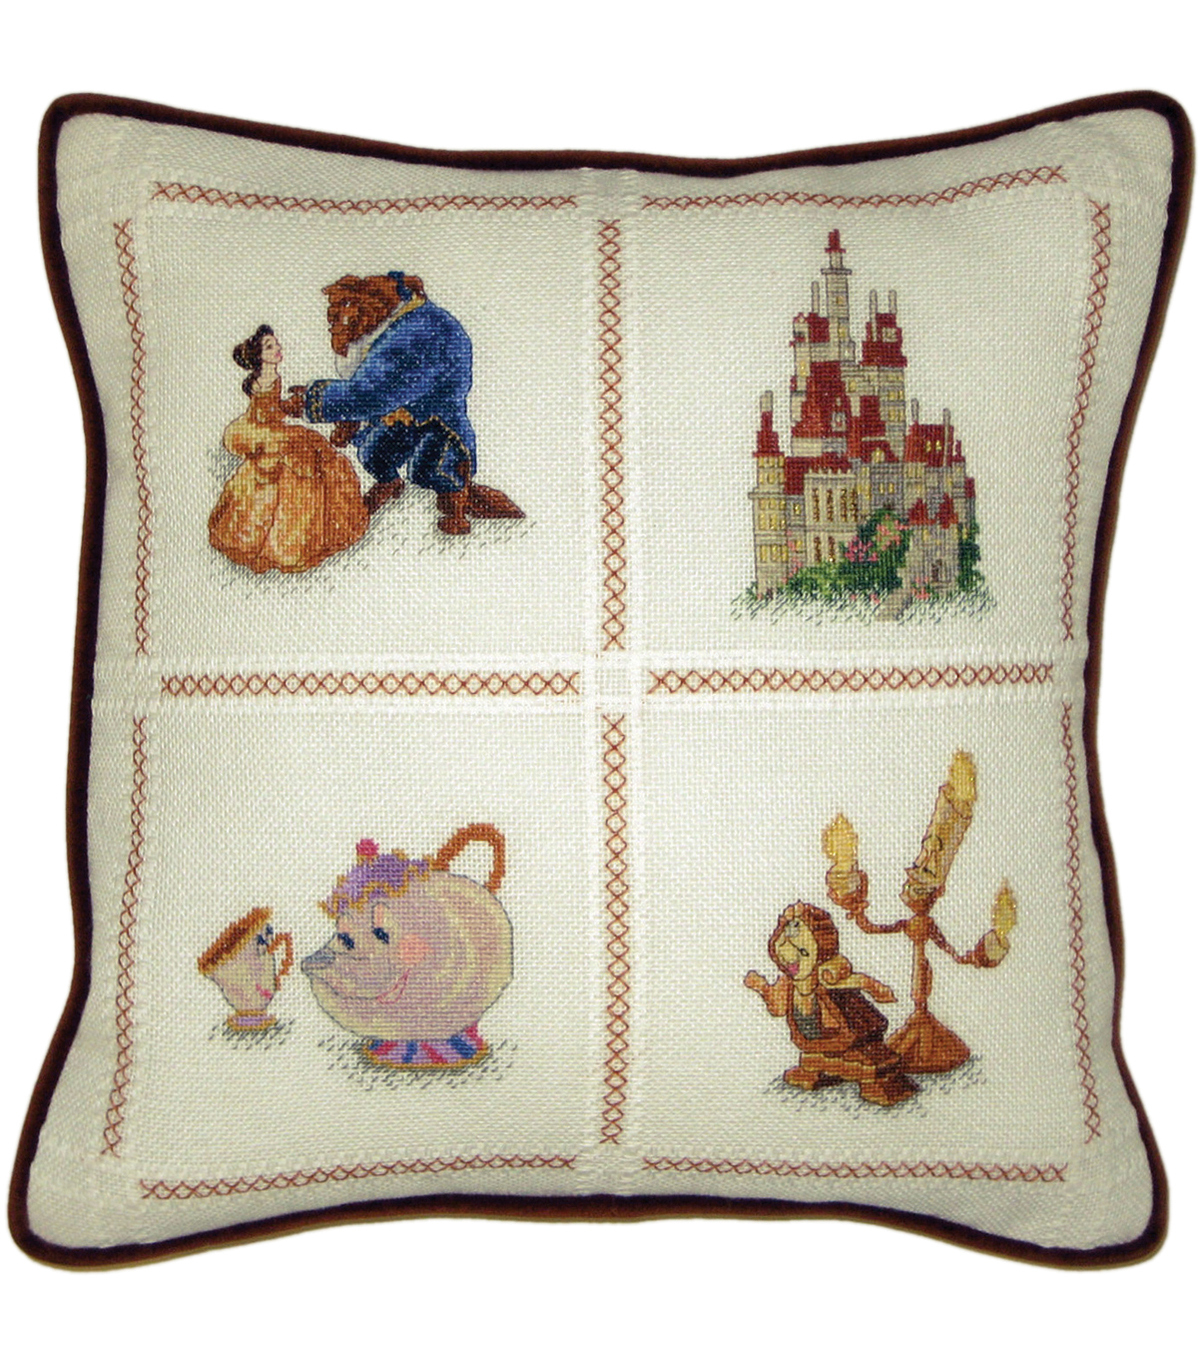 Beauty & The Beast Pillow Counted Cross Stitch Kit-14\u0022X14\u0022 18 Count